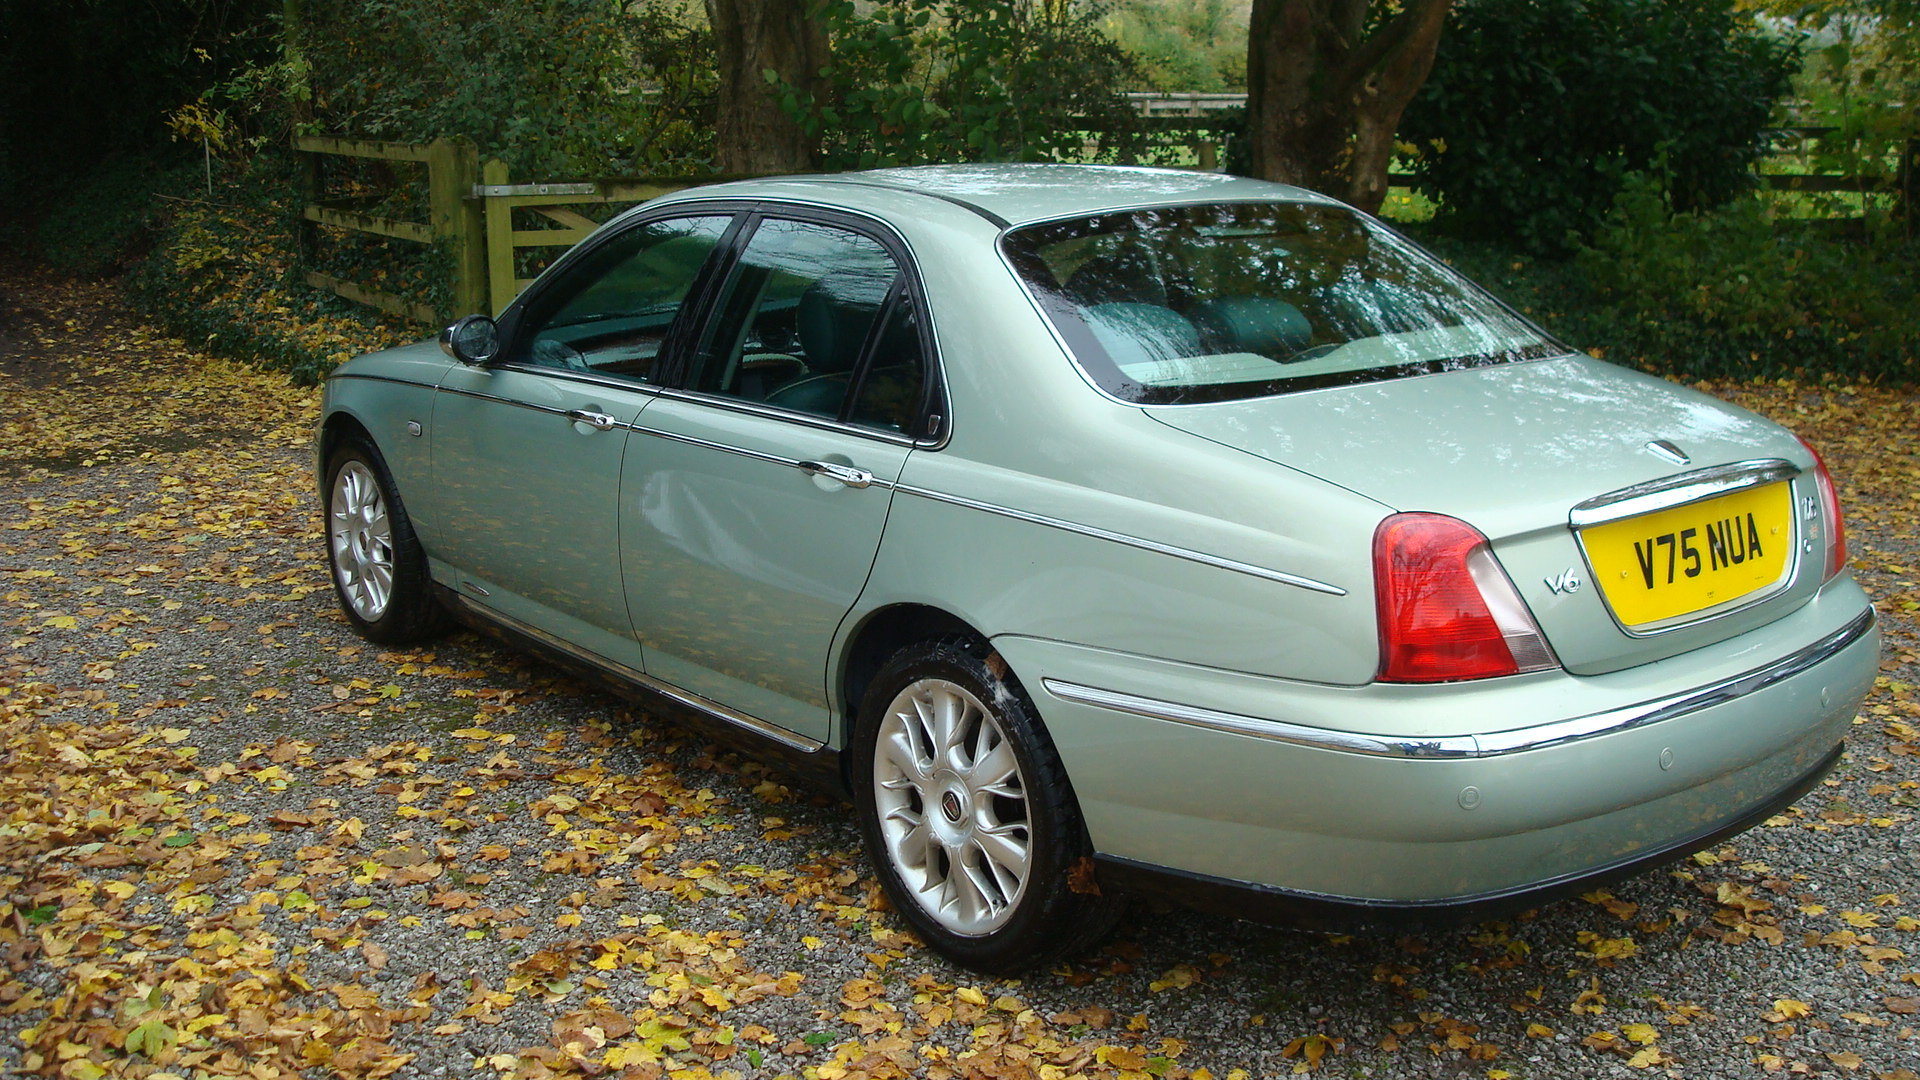 1999 Rover 75 2.5 V6 Connoisseur For Sale (picture 3 of 6)